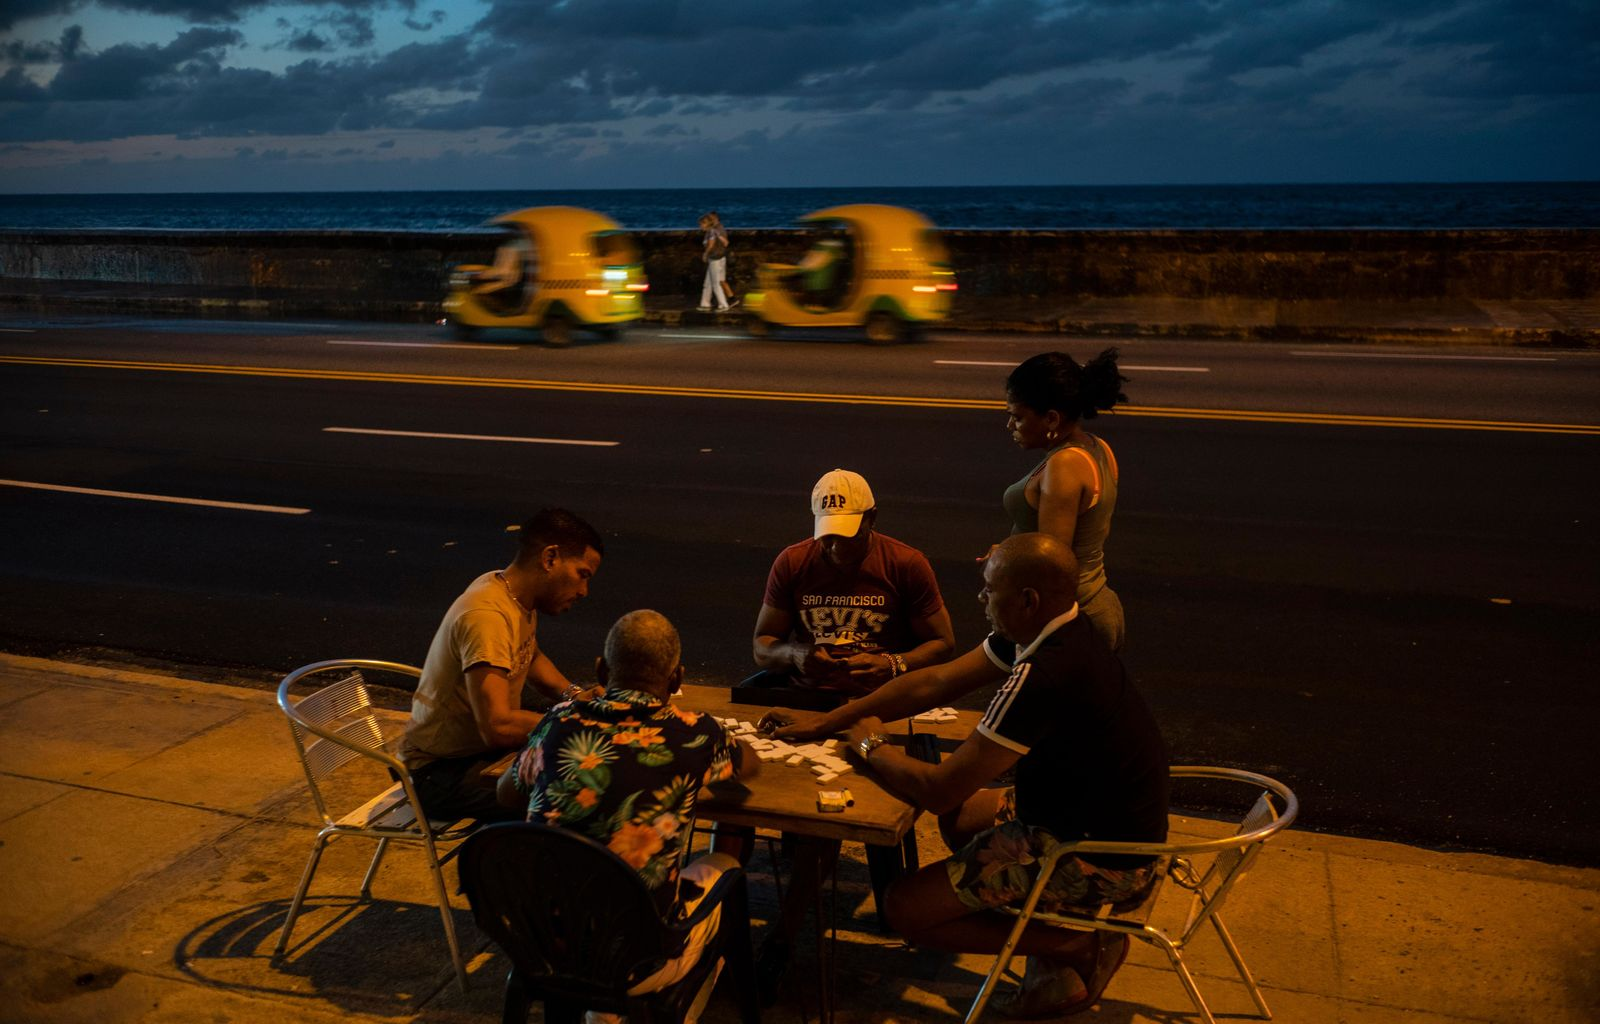 In this Nov. 10, 2019 photo, people play dominoes near the malecon sea wall at sunset in Havana, Cuba. The city will celebrate its 500th anniversary on Nov. 16. (AP Photo/Ramon Espinosa)